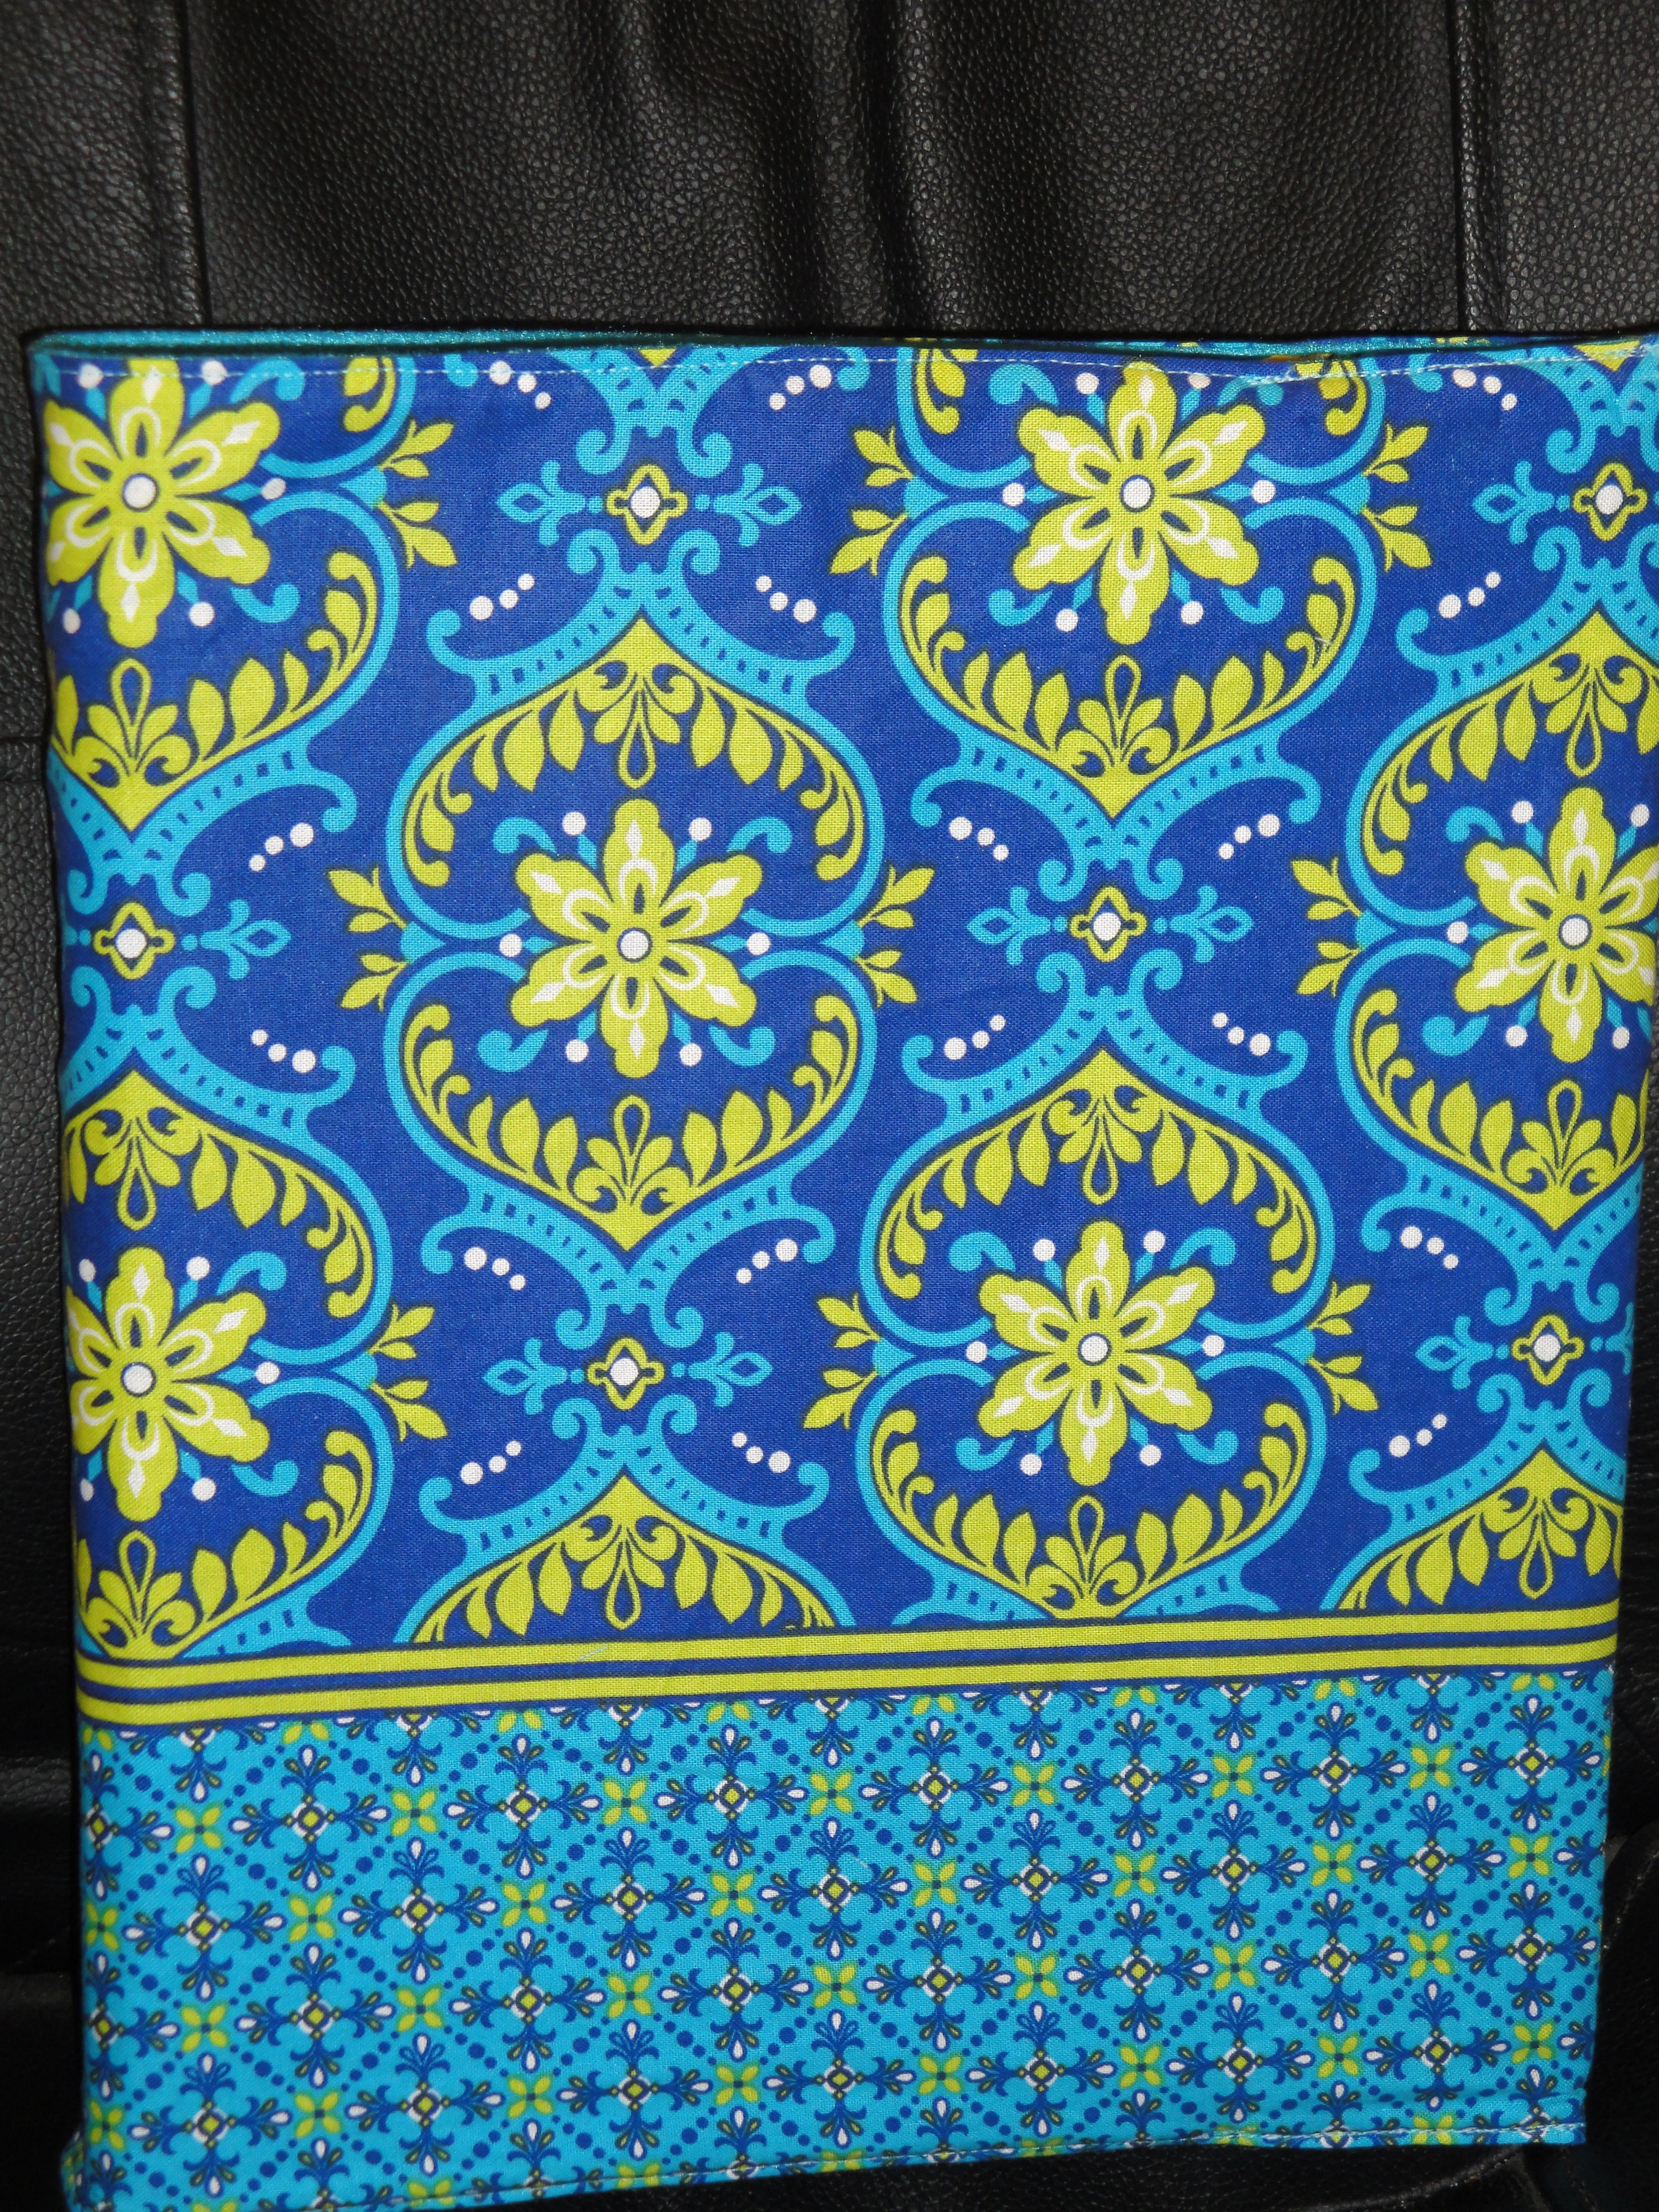 How to Create A Binder Elegant Make Your Own Binder Cover